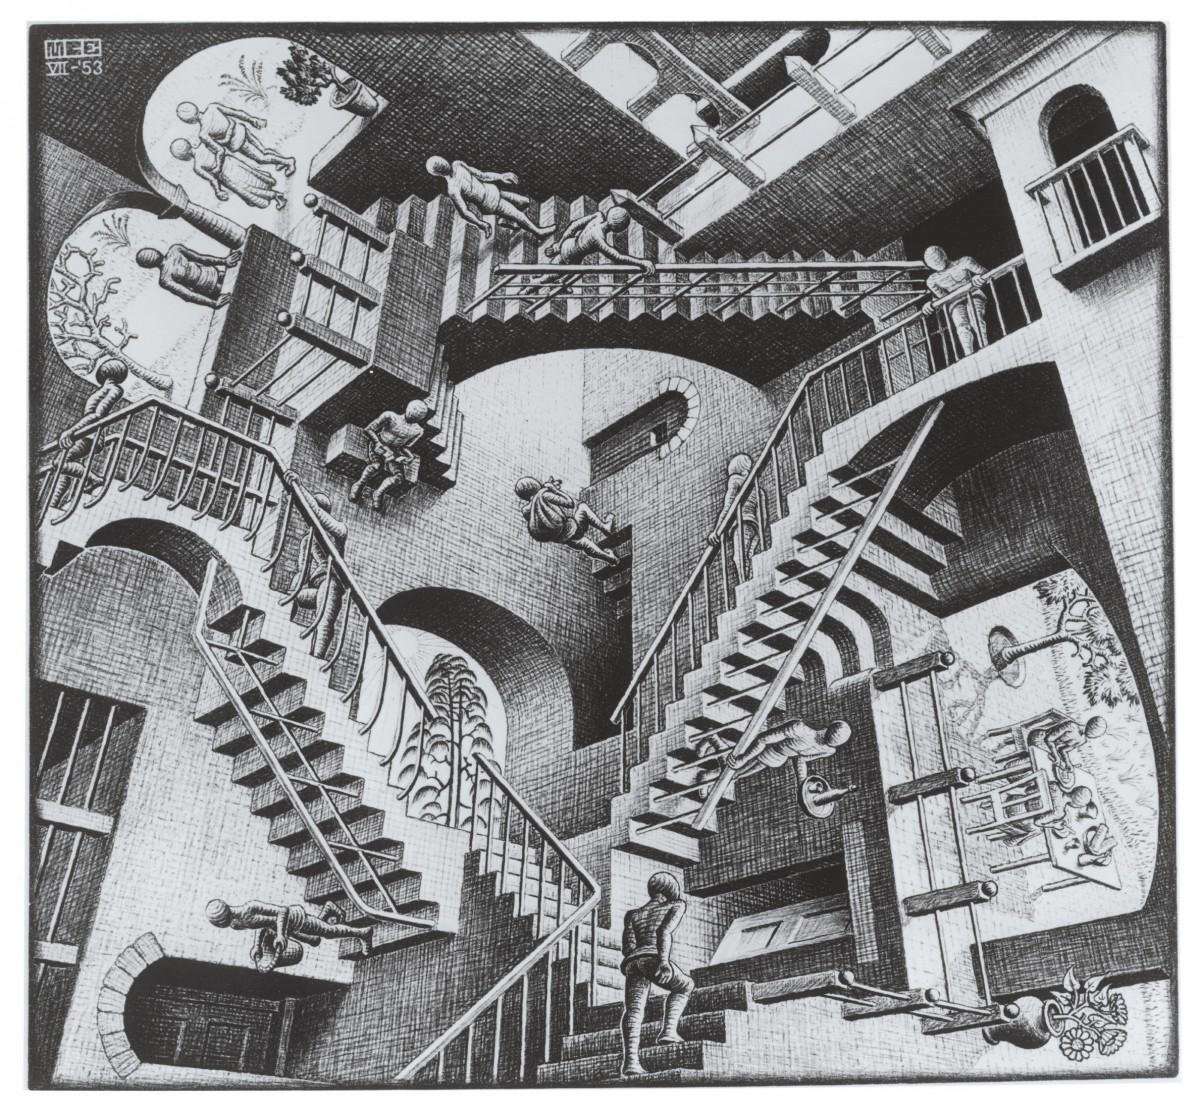 「相対性」(1953年)